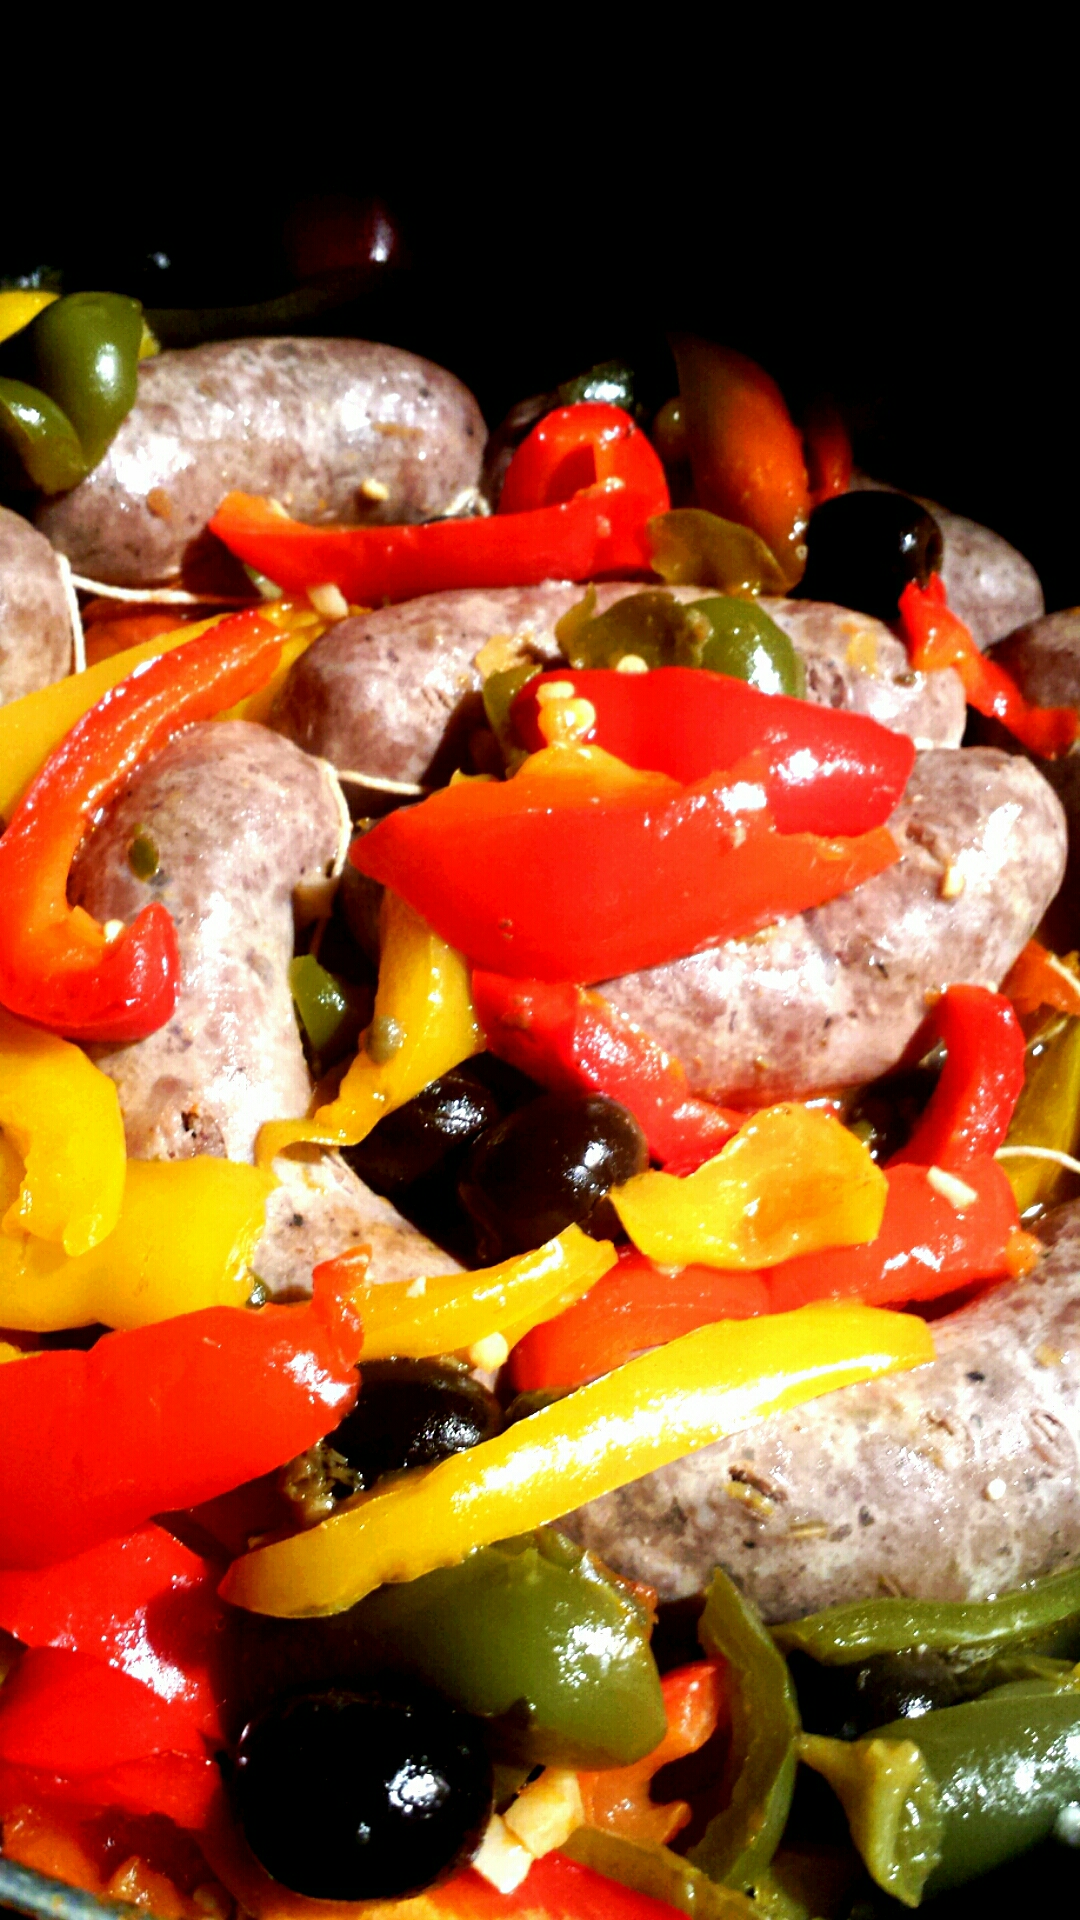 homemade sausages with homemade lachryma christi rose vinegar peppers and olives